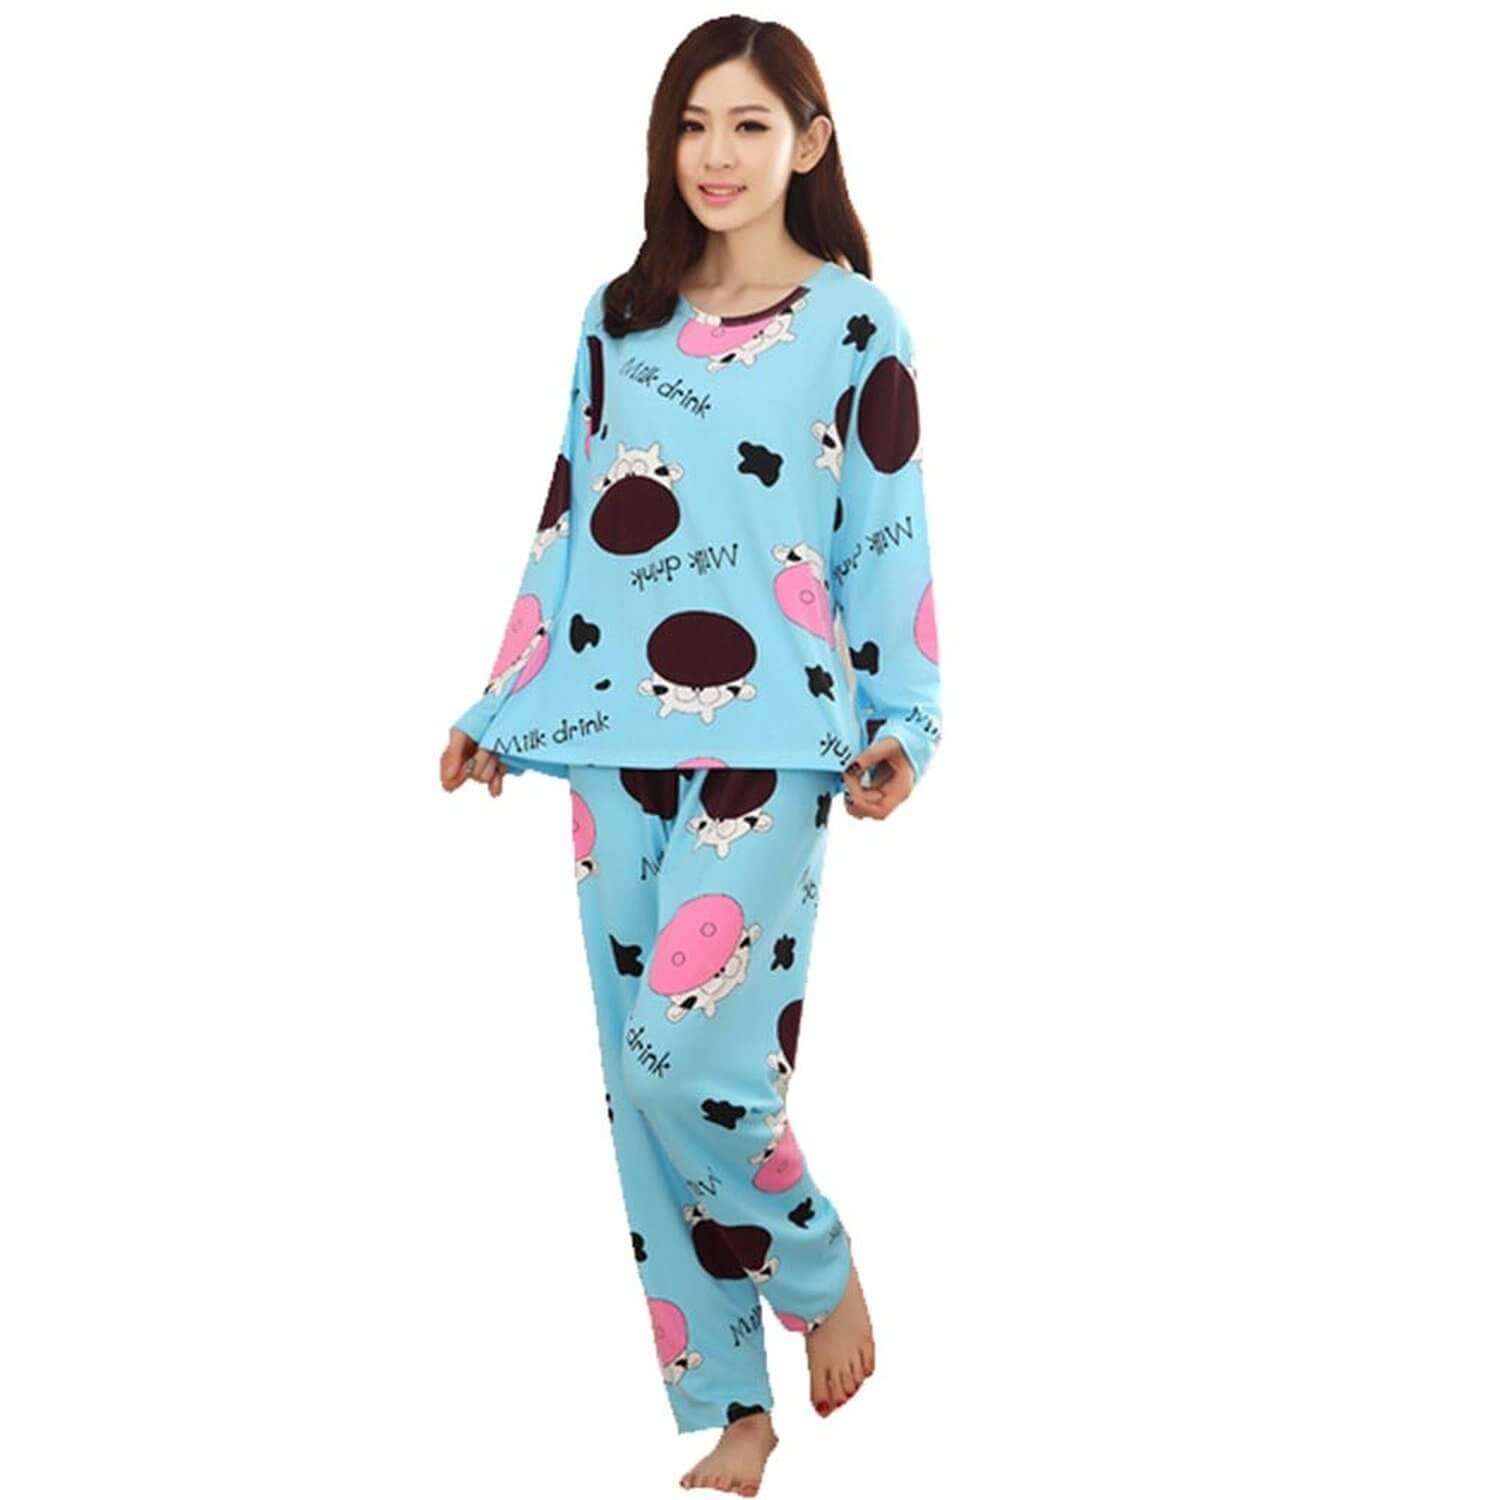 Top Ten Best Women's Long Sleeve Pajama Sets Reviews